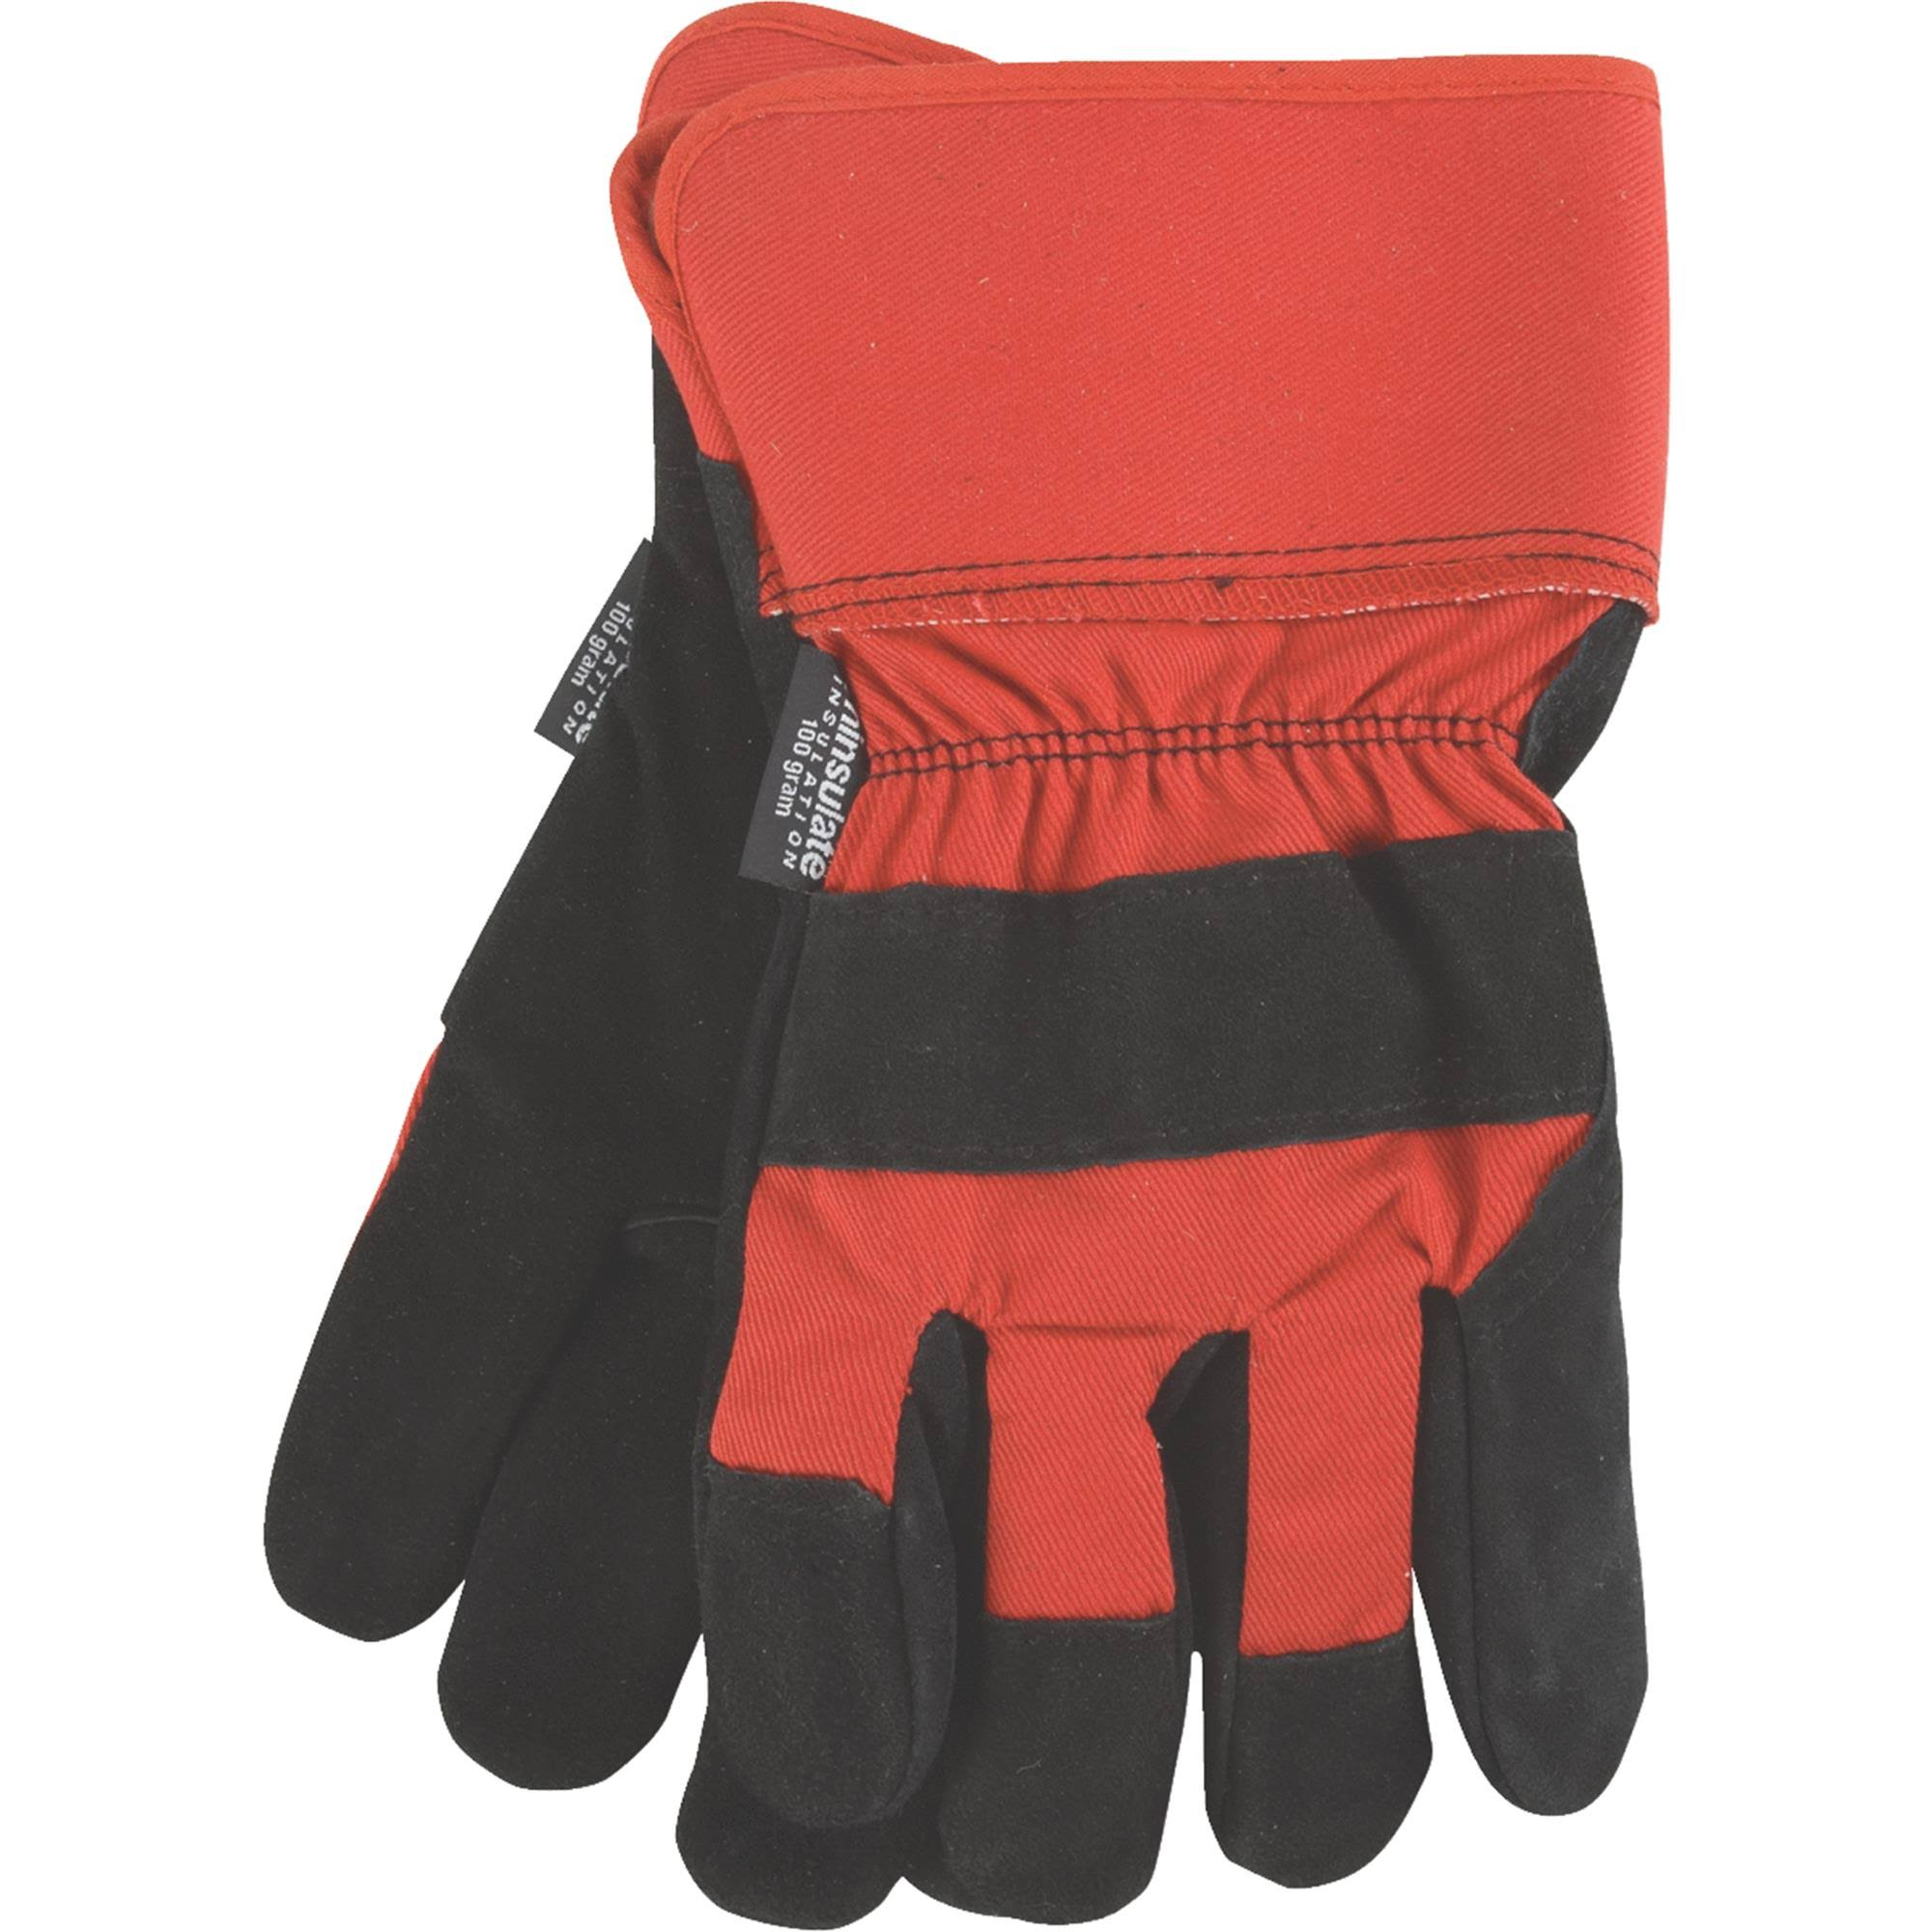 Do It Best Leather Winter Work Glove 750882